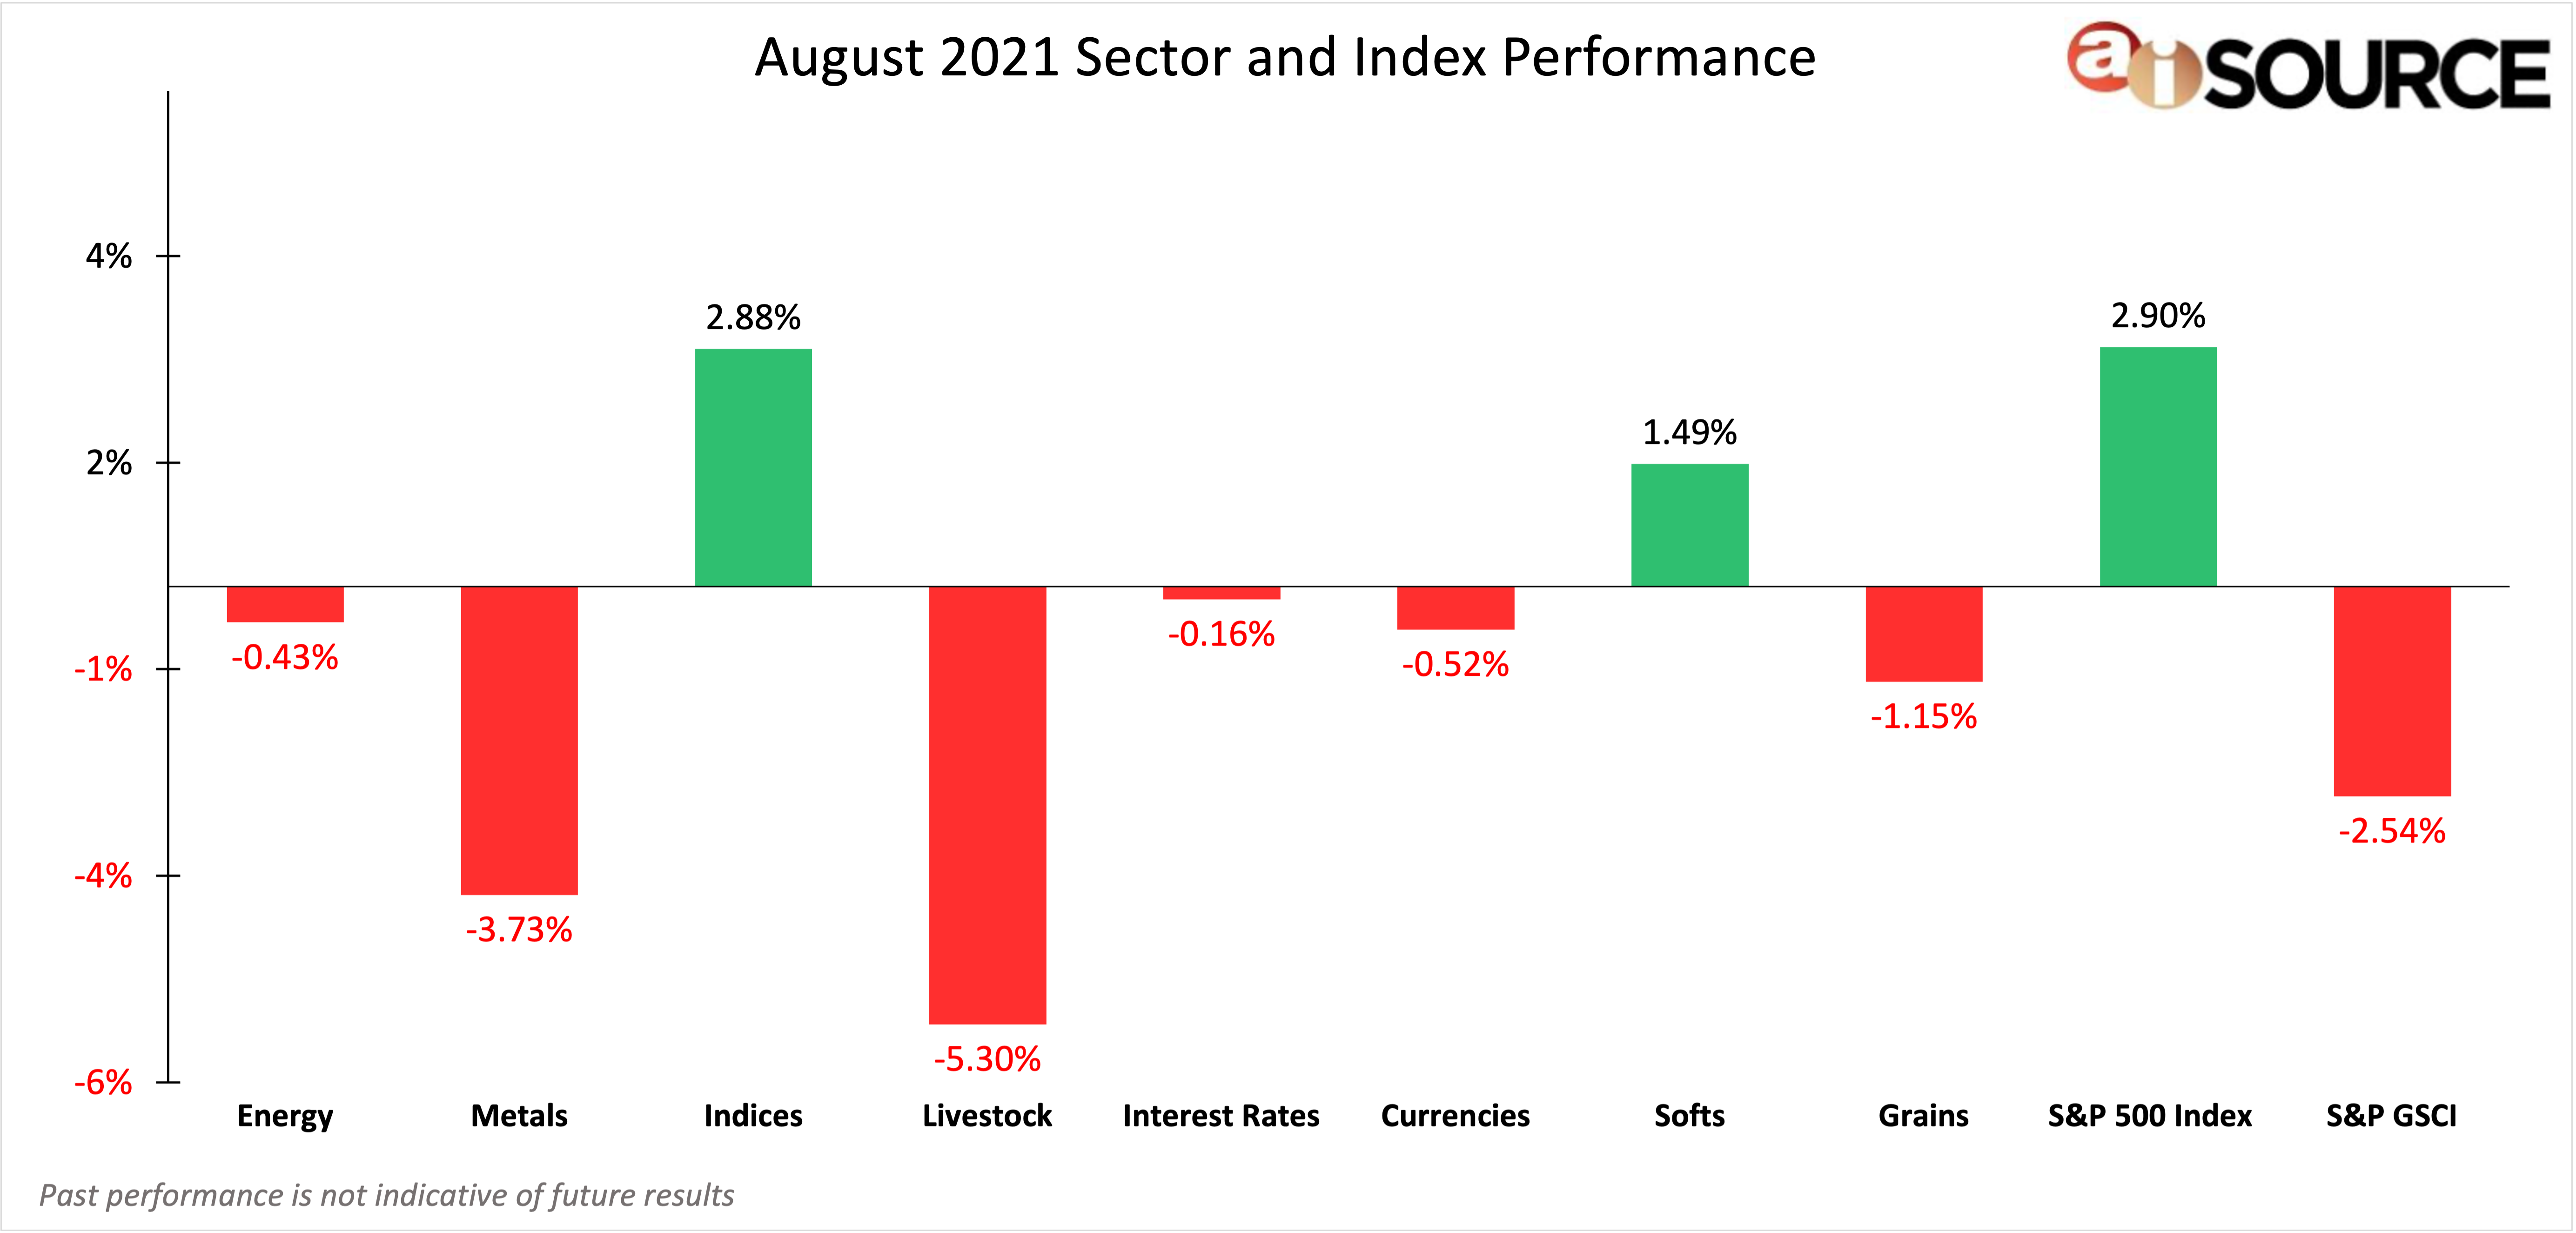 August 2021 Sector and Index Performance